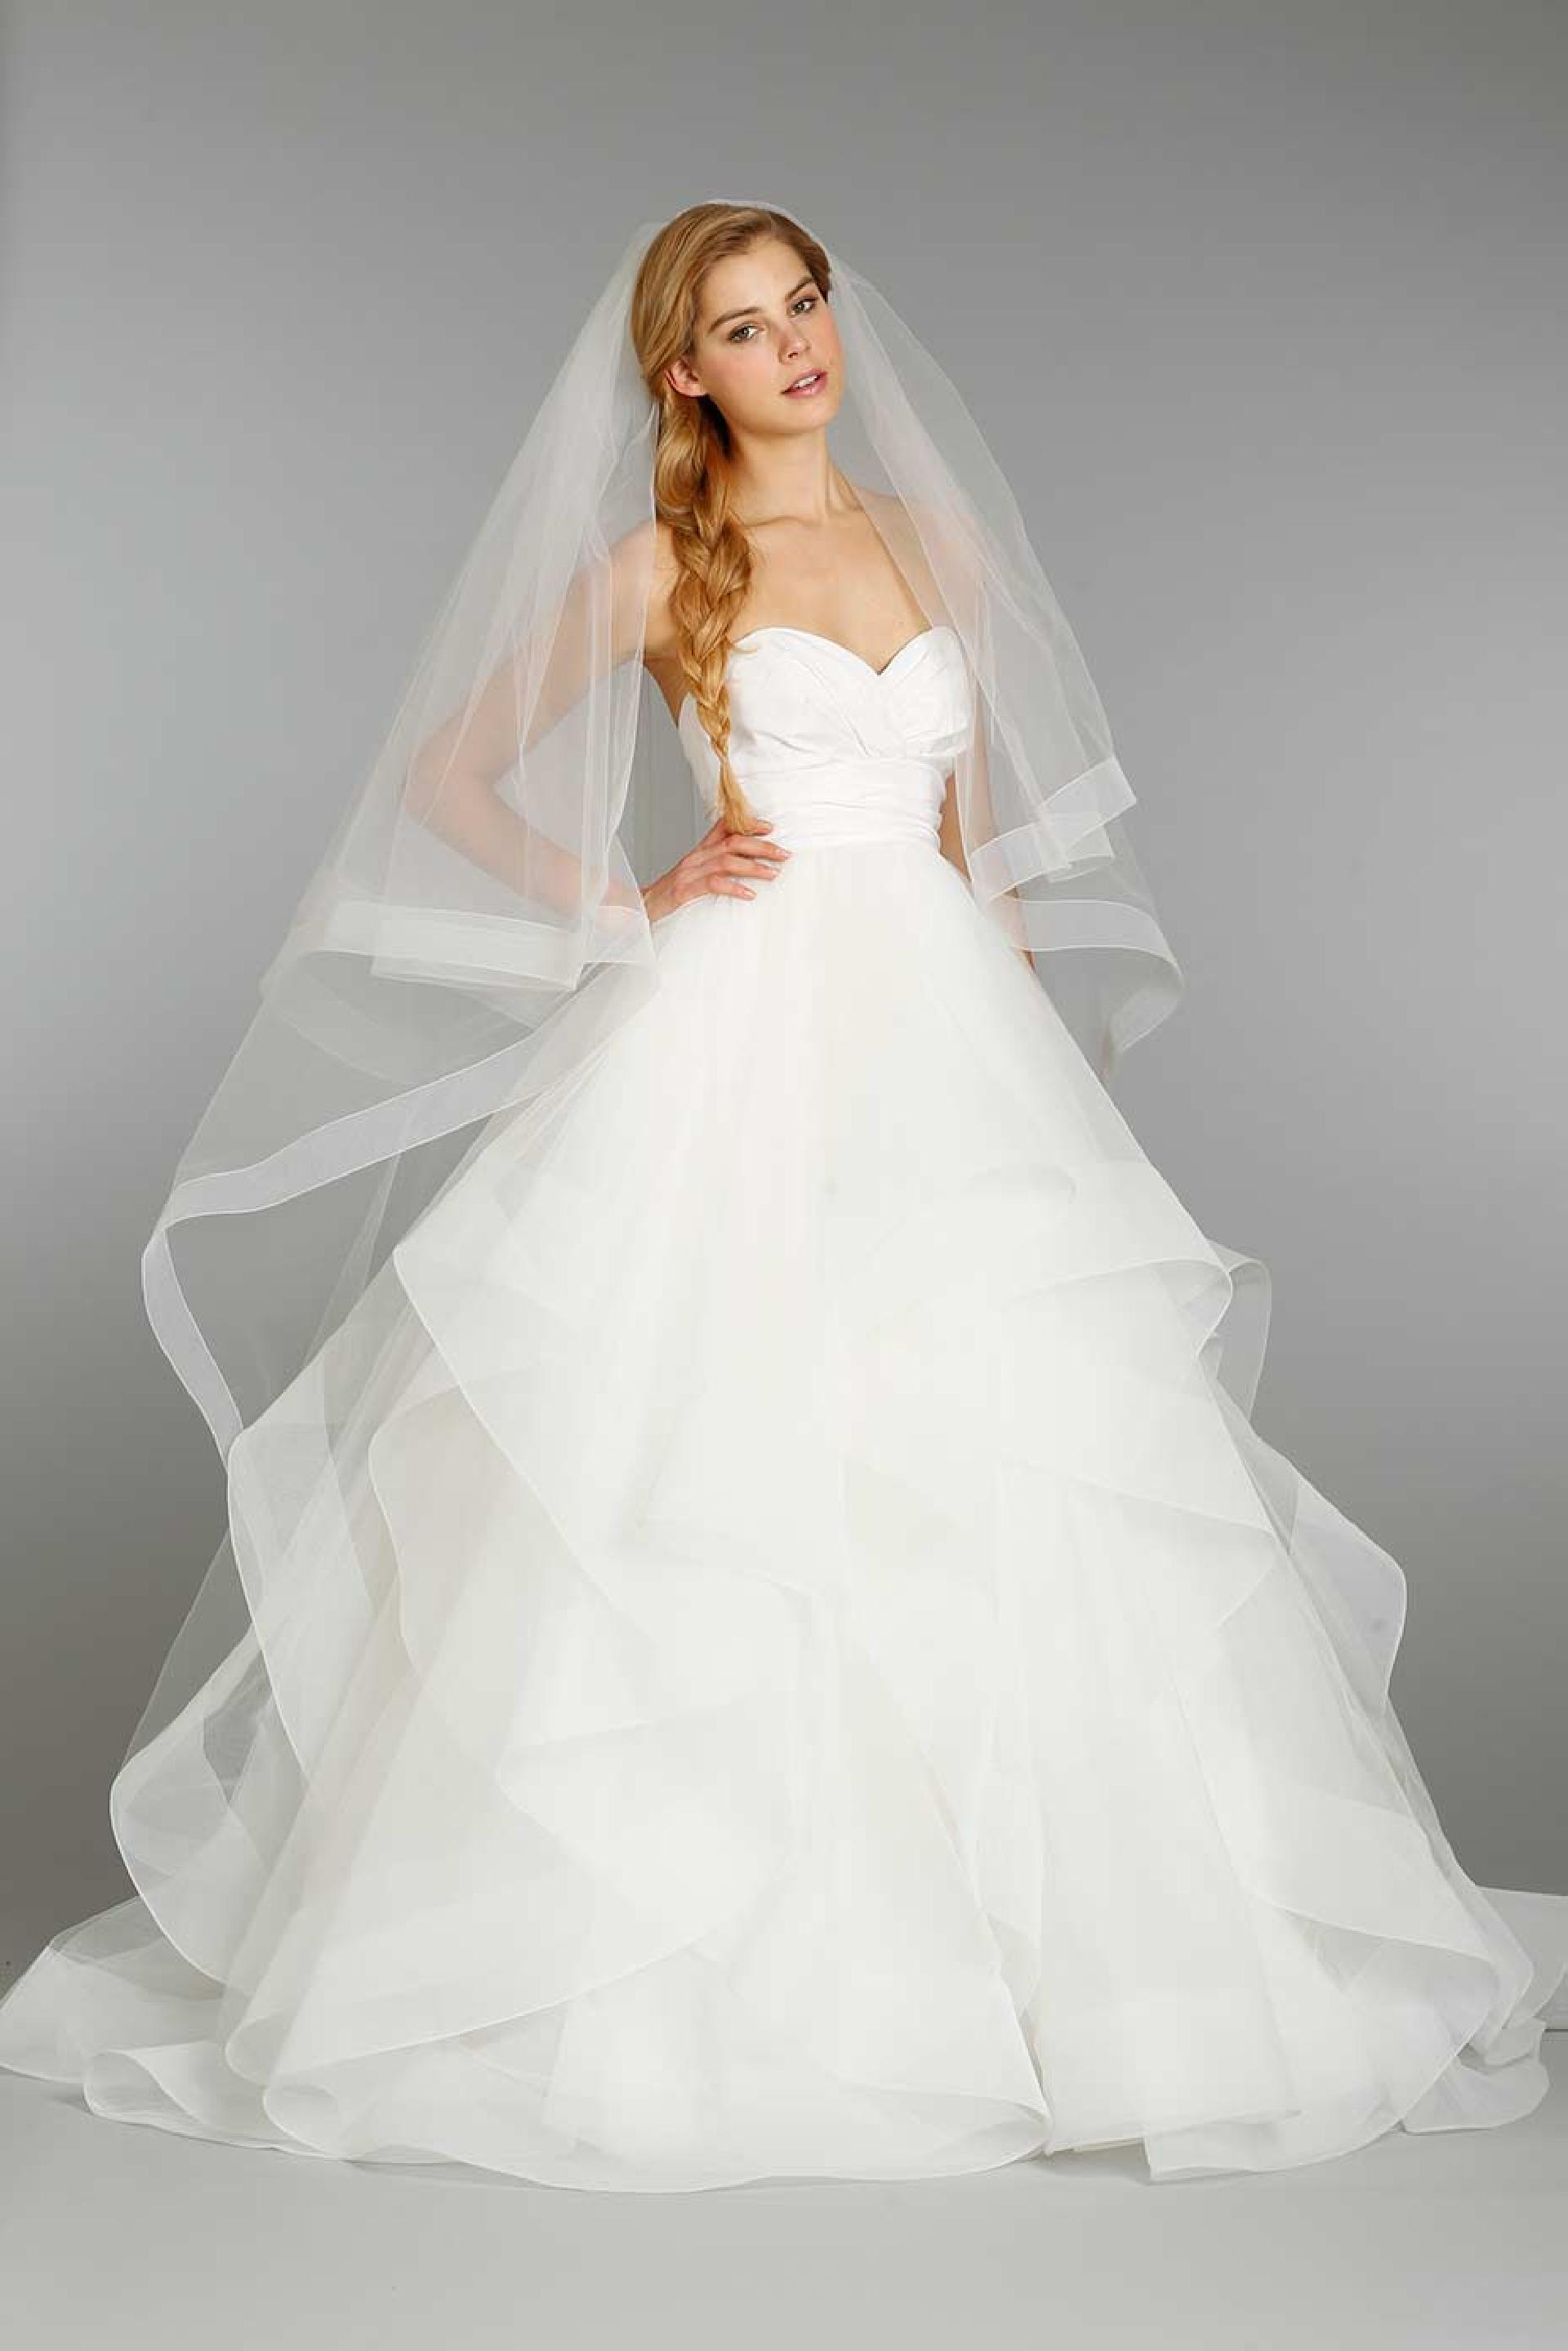 Wedding Hayley Paige Wedding Dresses hayley paige bridal designer wedding dresses in sc collection